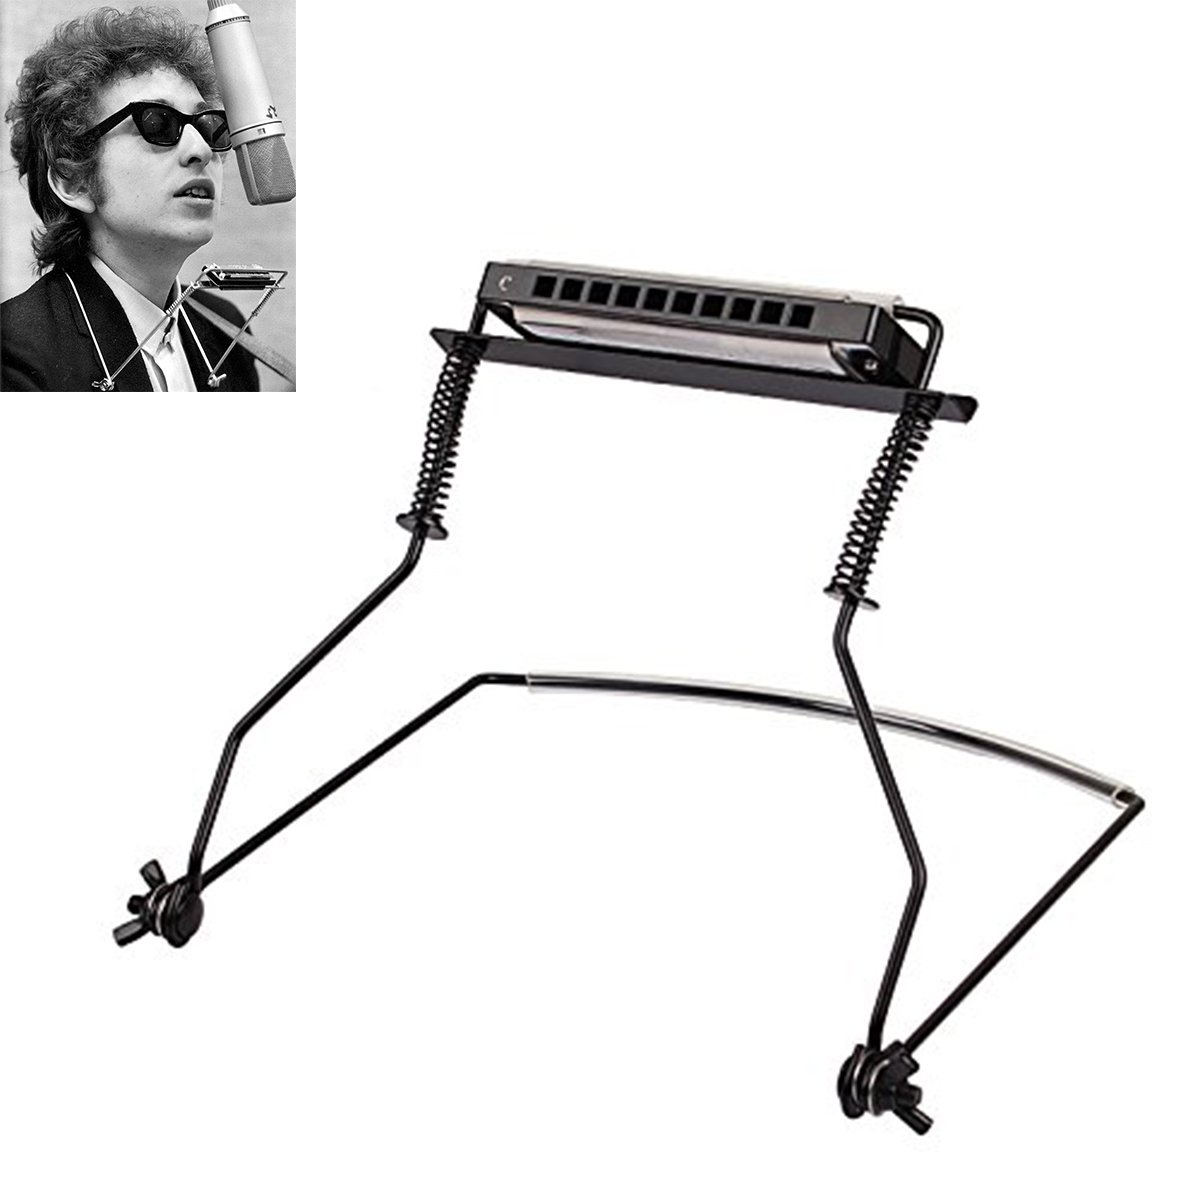 LLOP Harmonica Holder - Hands Free Harmonica Neck Holder Stand for 10 Hole Harmonica (10 Hole)